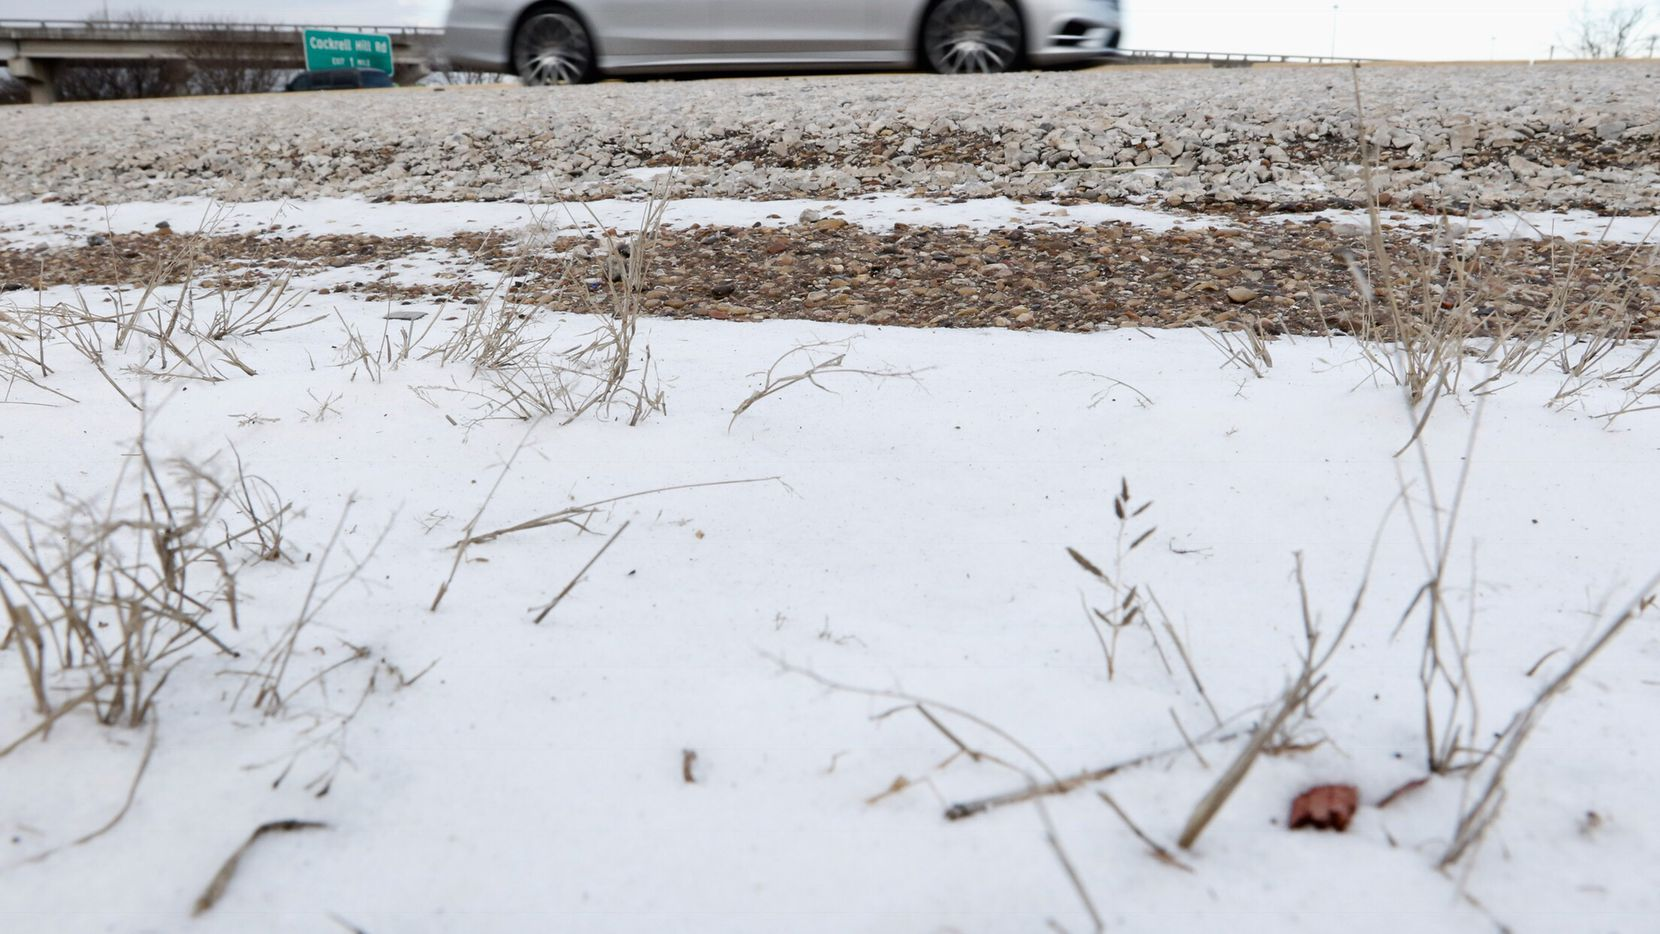 A car passed wind-blown snow last year along U.S. Highway 67 and Interstate 20 in southern Dallas.